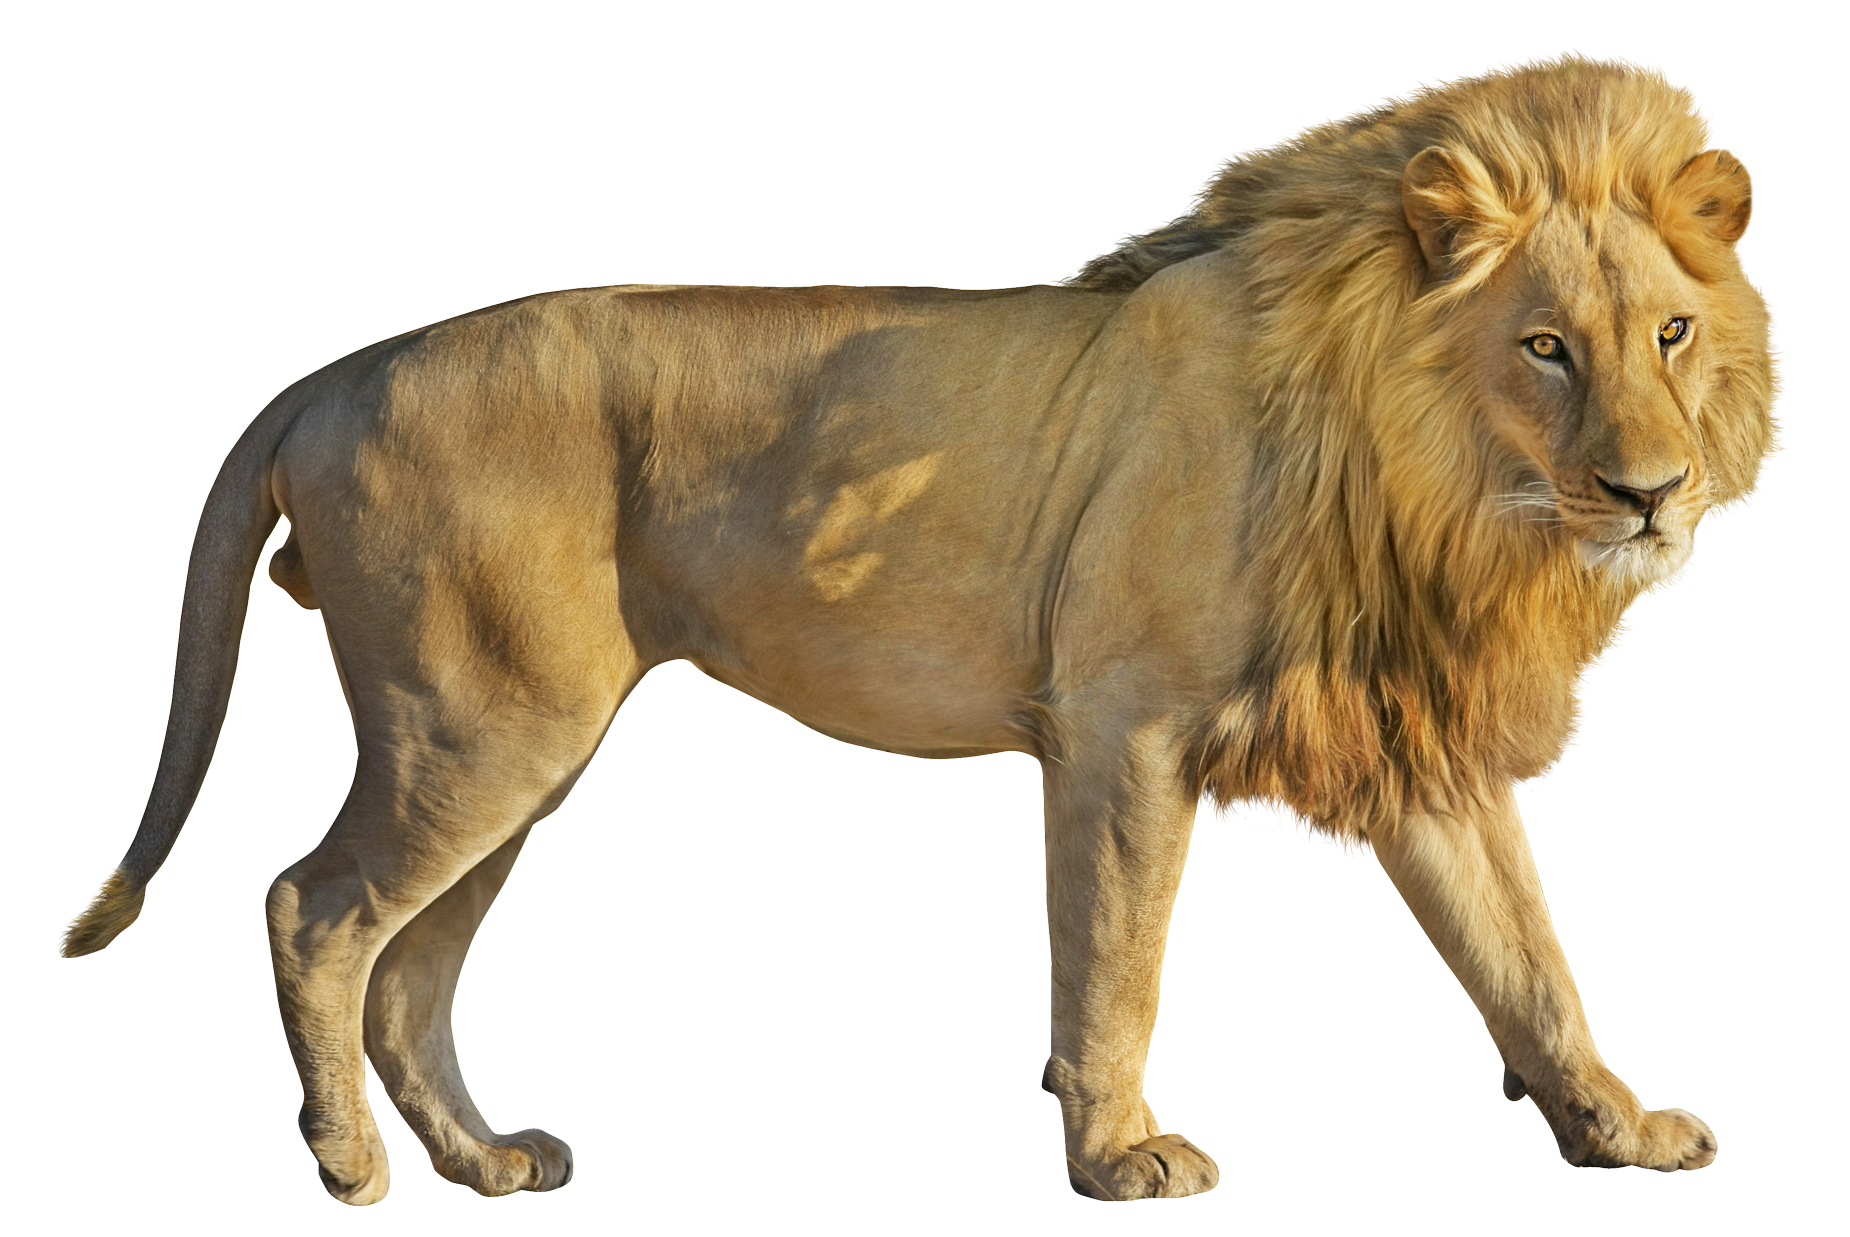 Lion HD PNG-PlusPNG.com-1850 - Lion HD PNG